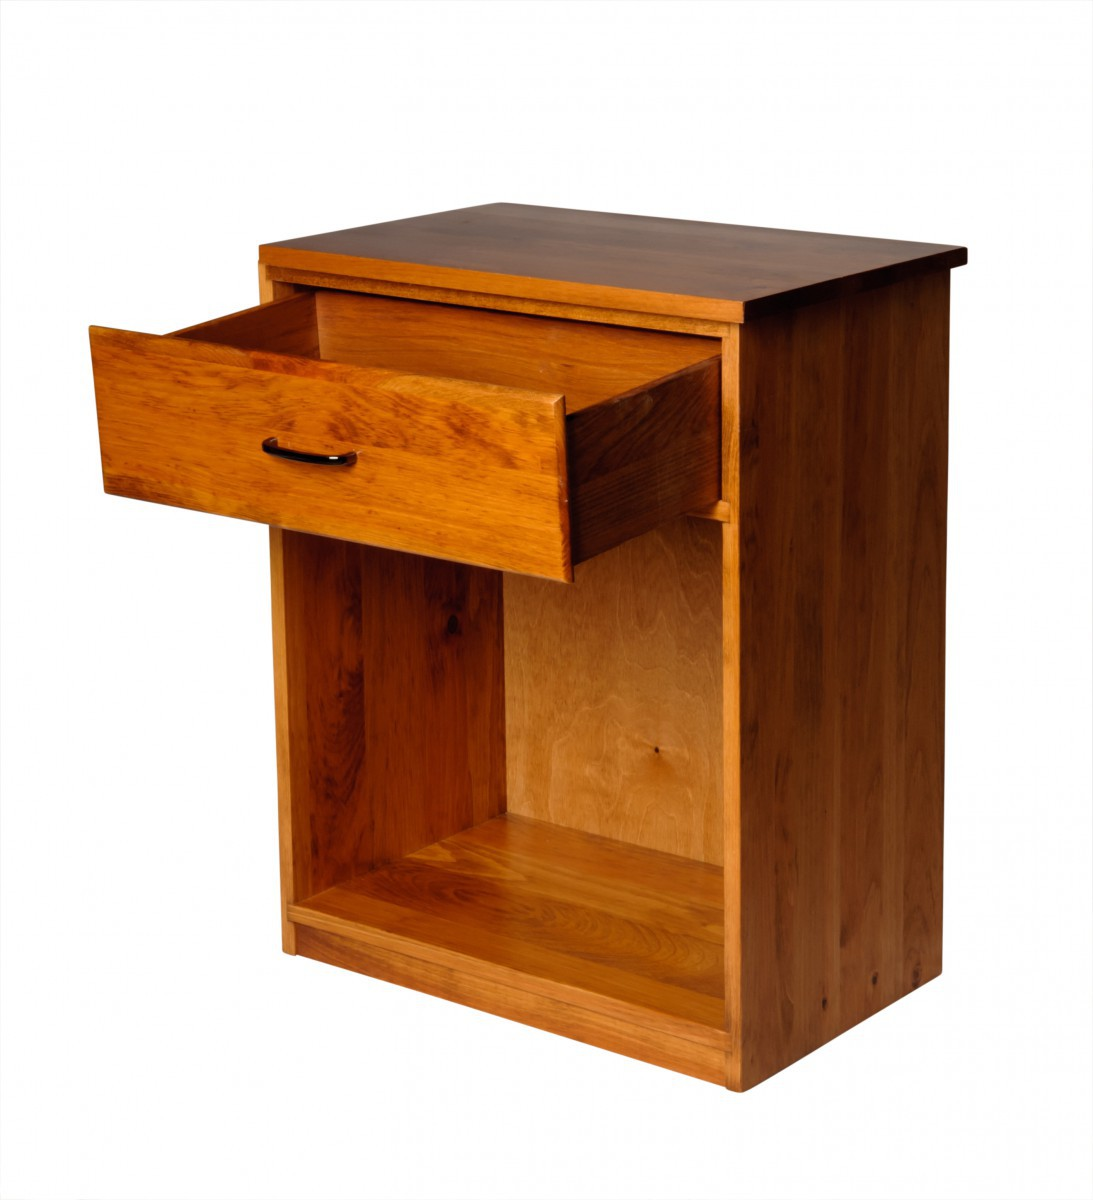 Office Desk Honey Solid Pine Printer Stand 1 Drawer Office Desk Desk Wood Desk